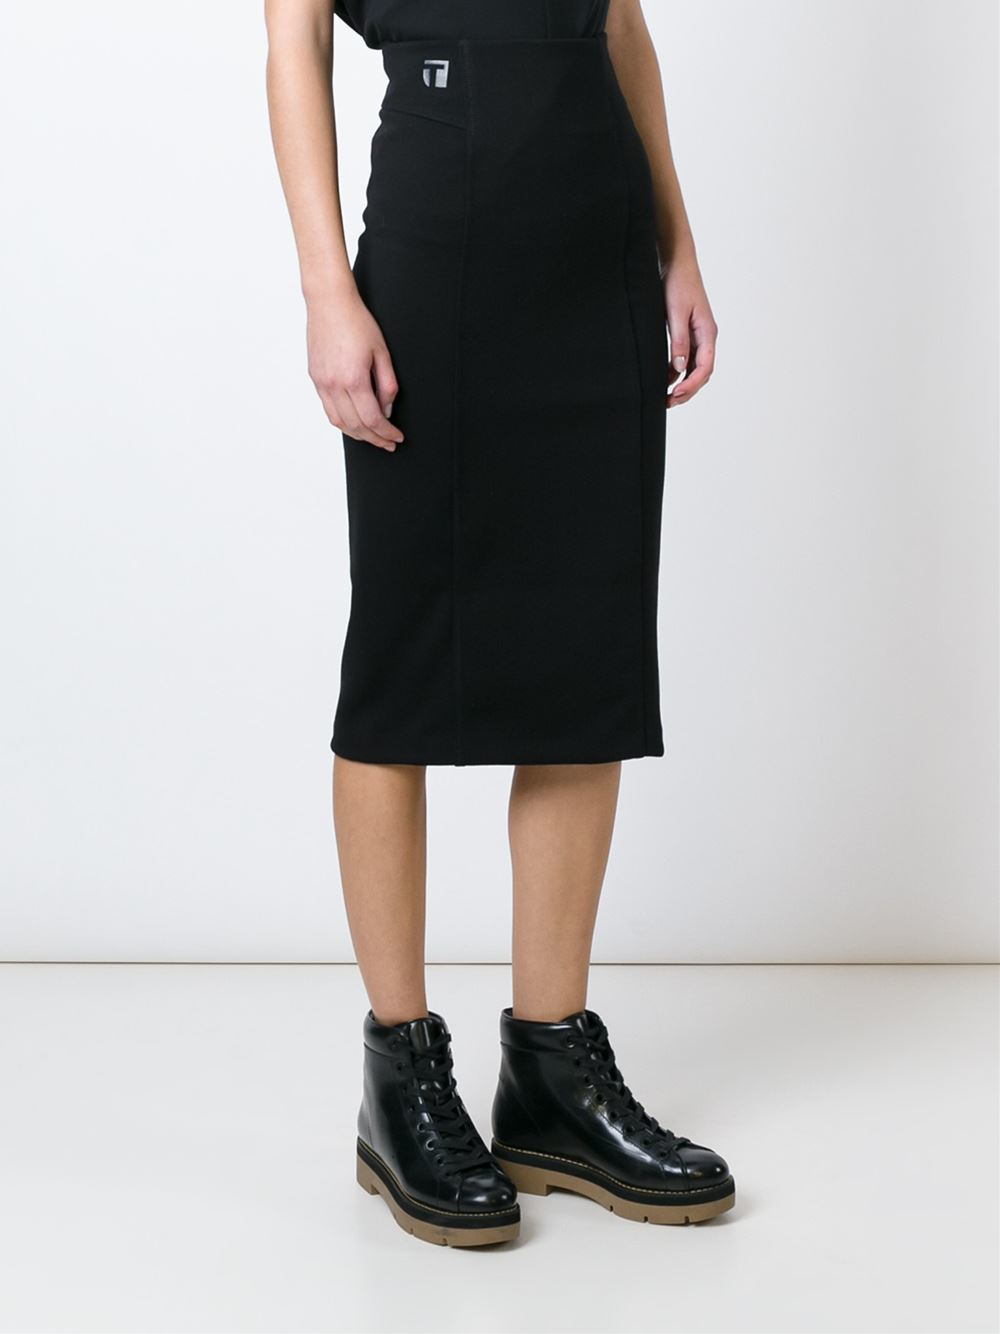 T by alexander wang Fitted Midi Skirt in Black | Lyst